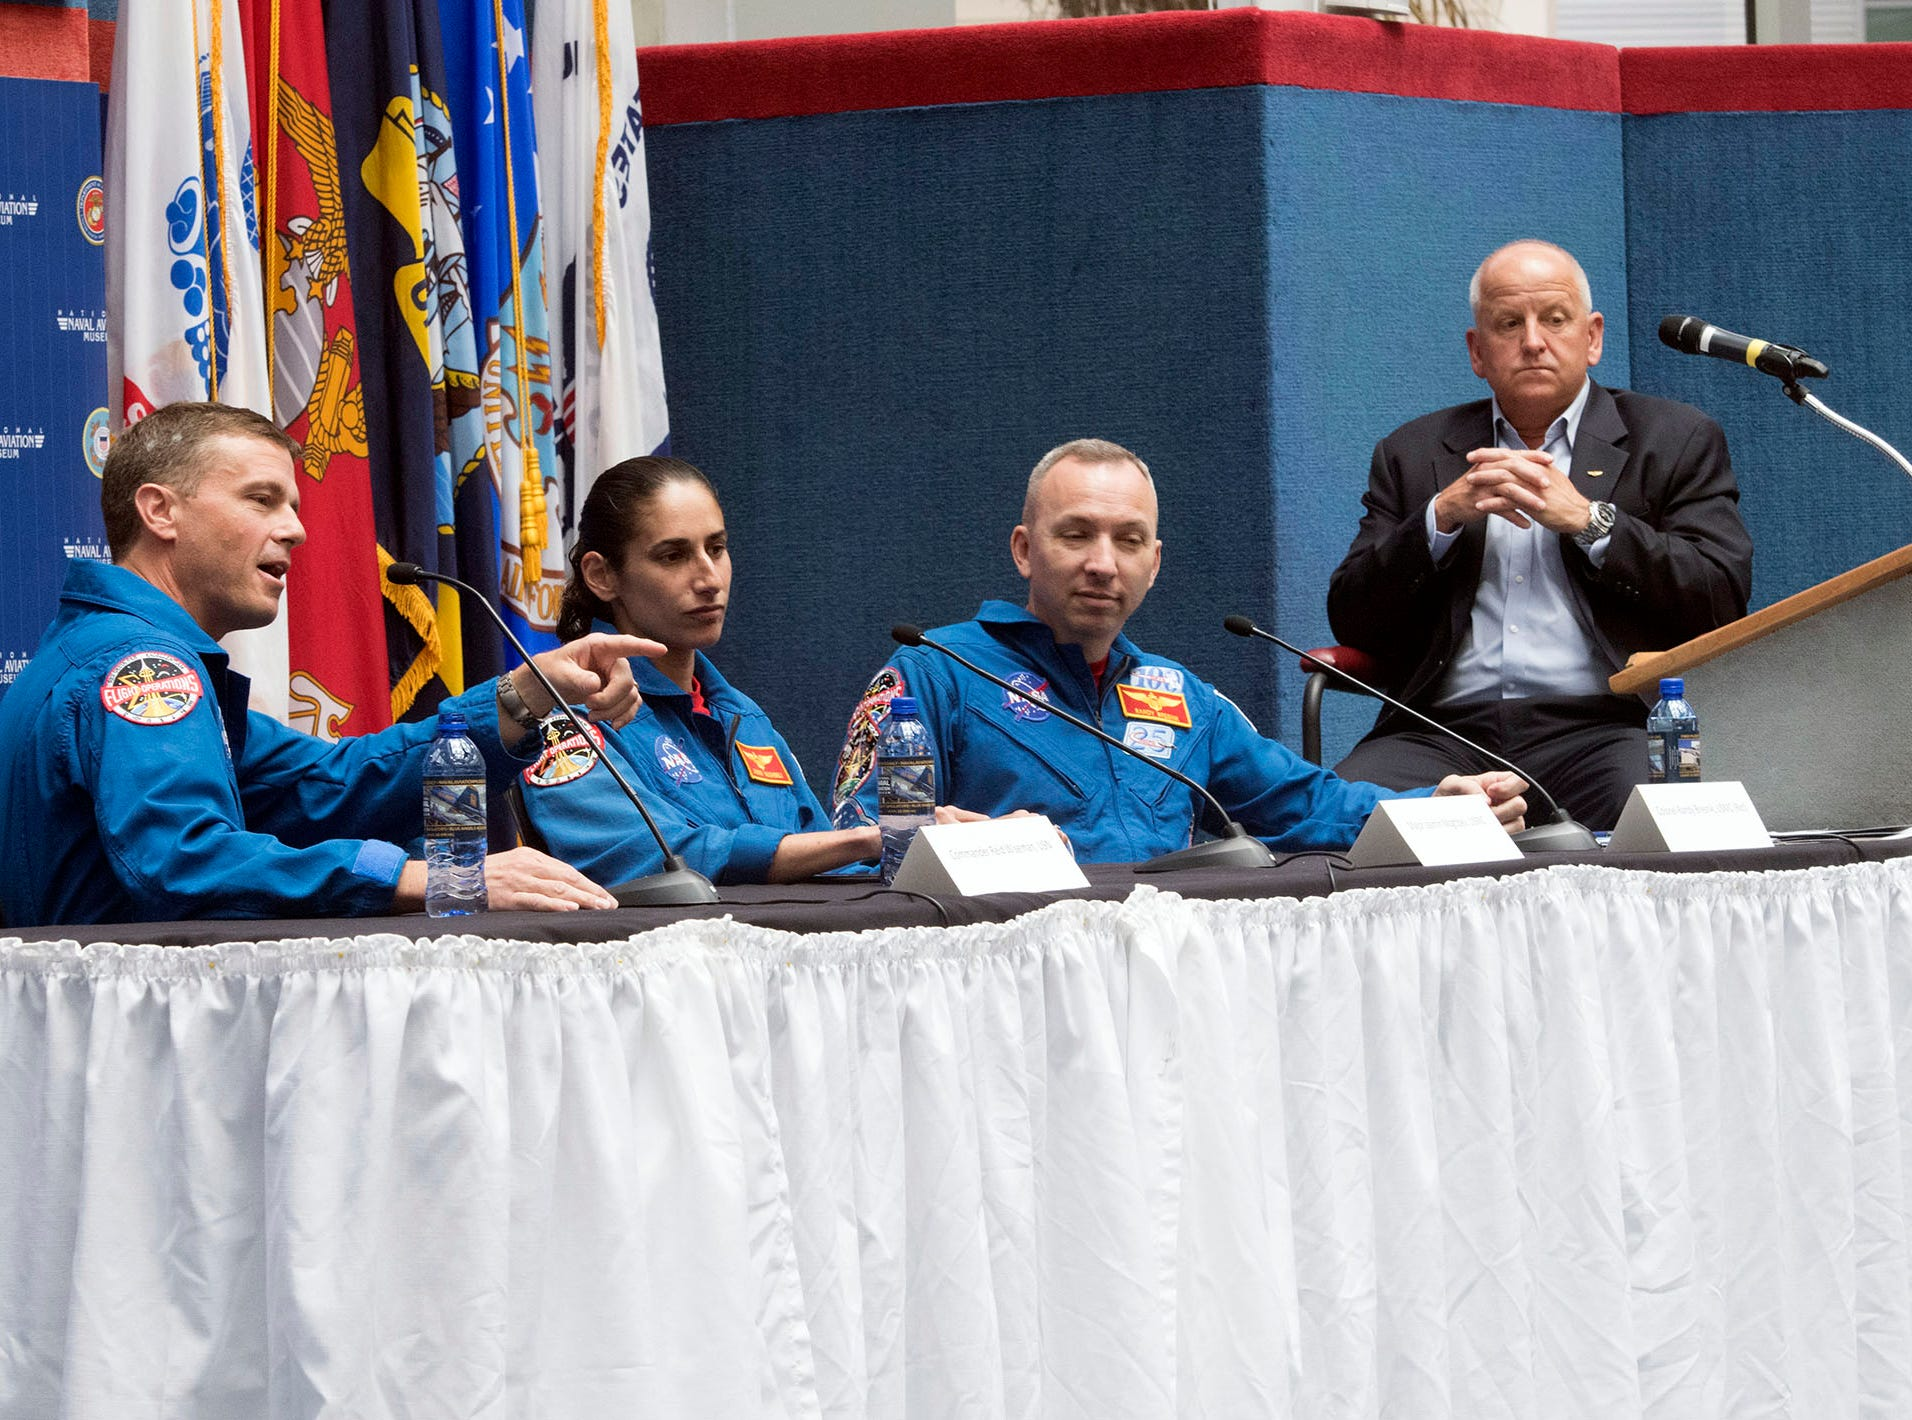 Naval Aviators, Cmdr. Reid Wiseman, Maj. Jasmin Moghbeli and Col. Randy Bresnik shares their experiences in the astronaut program during Naval Aviation Symposium at the National Naval Aviation Museum on Thursday, May 9, 2019.